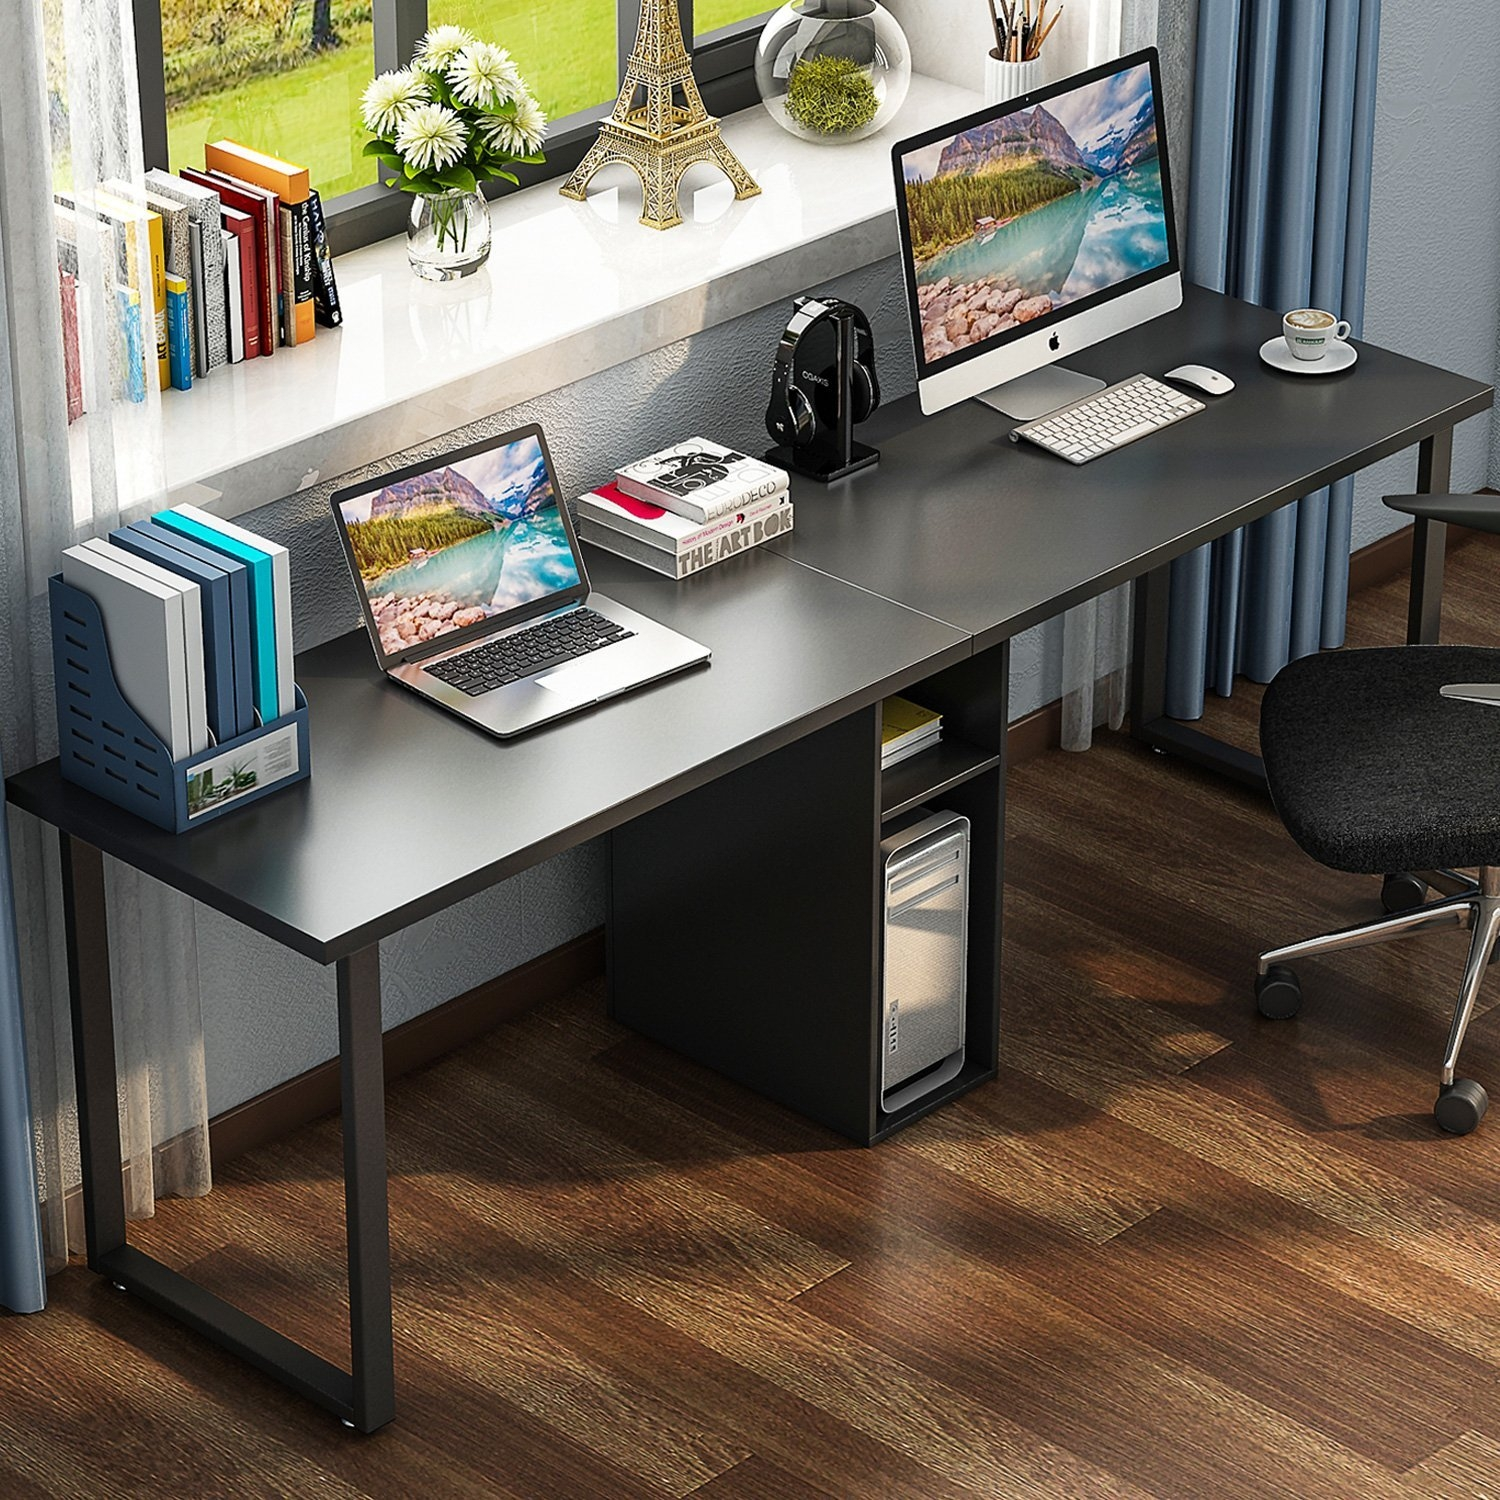 home office computer desks for two people 2 Person Desk - Visual Hunt